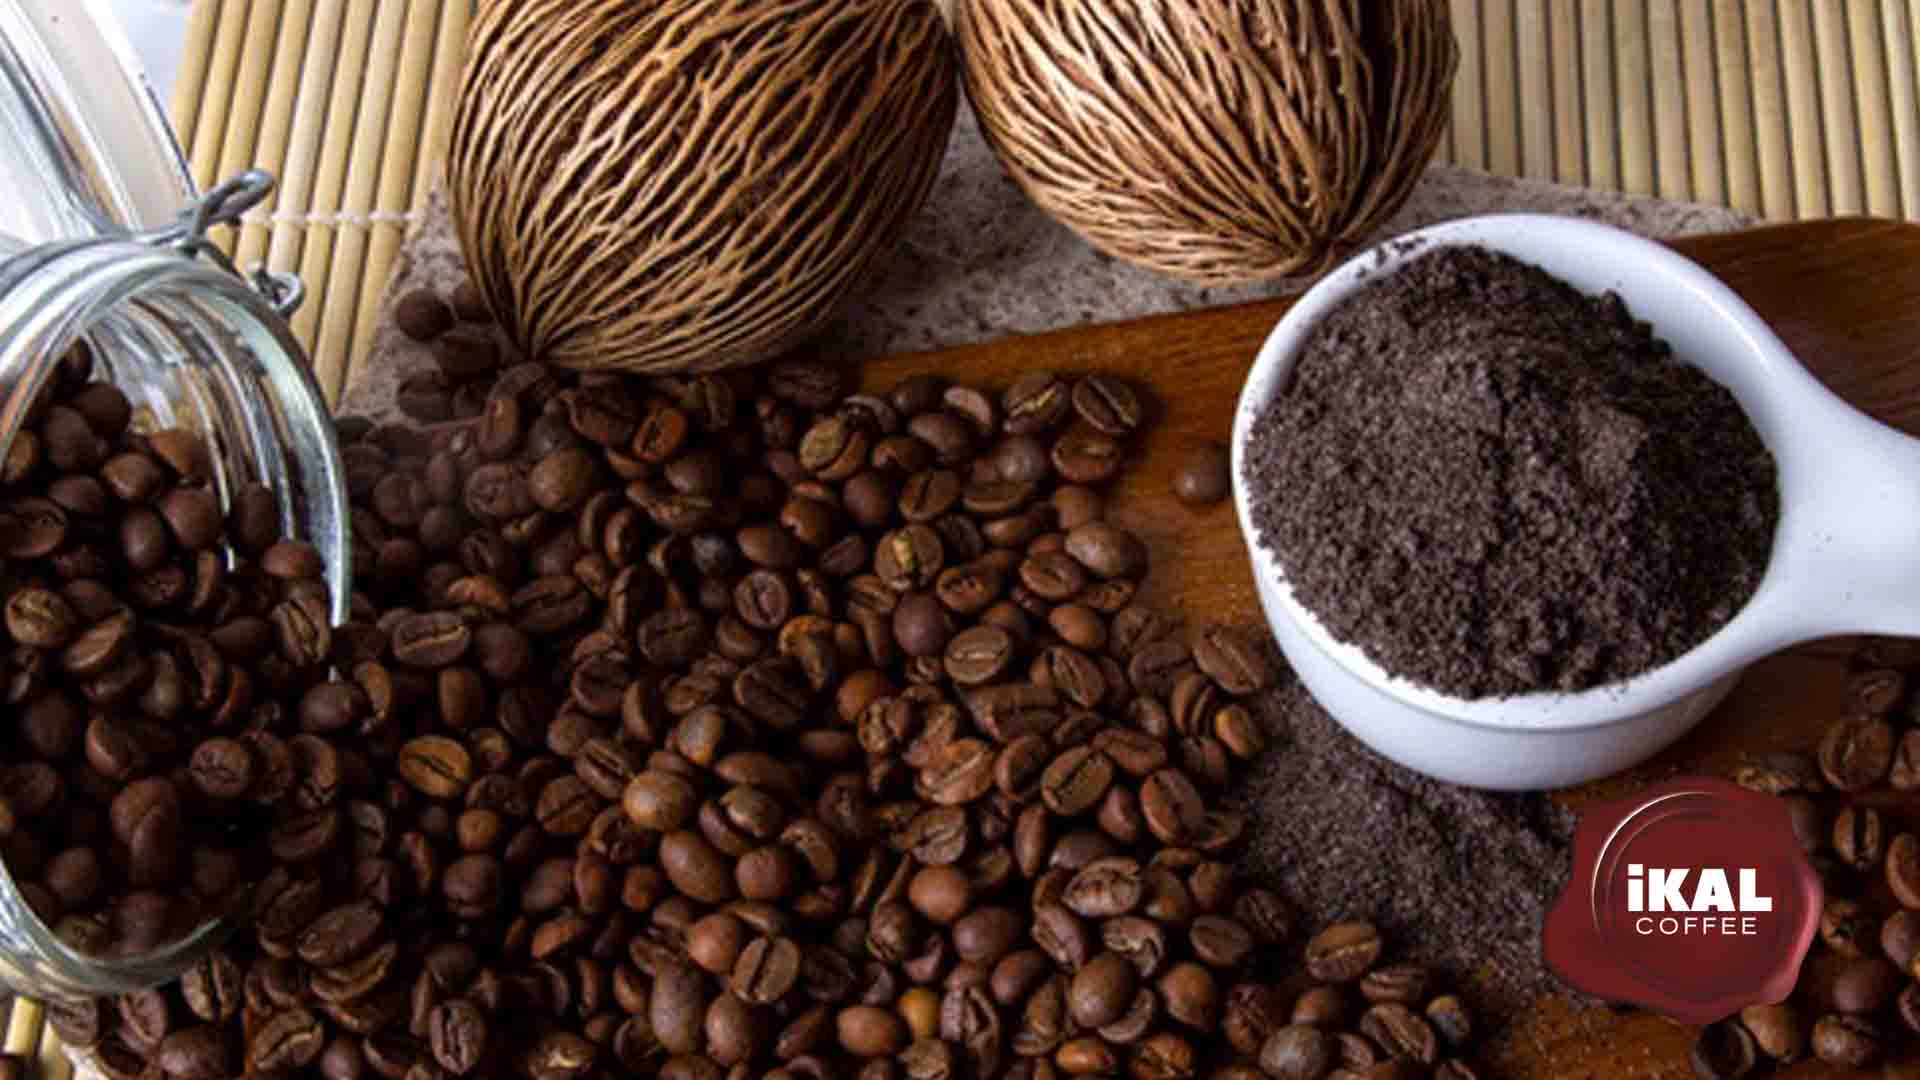 ikal coffee exfoliante de café